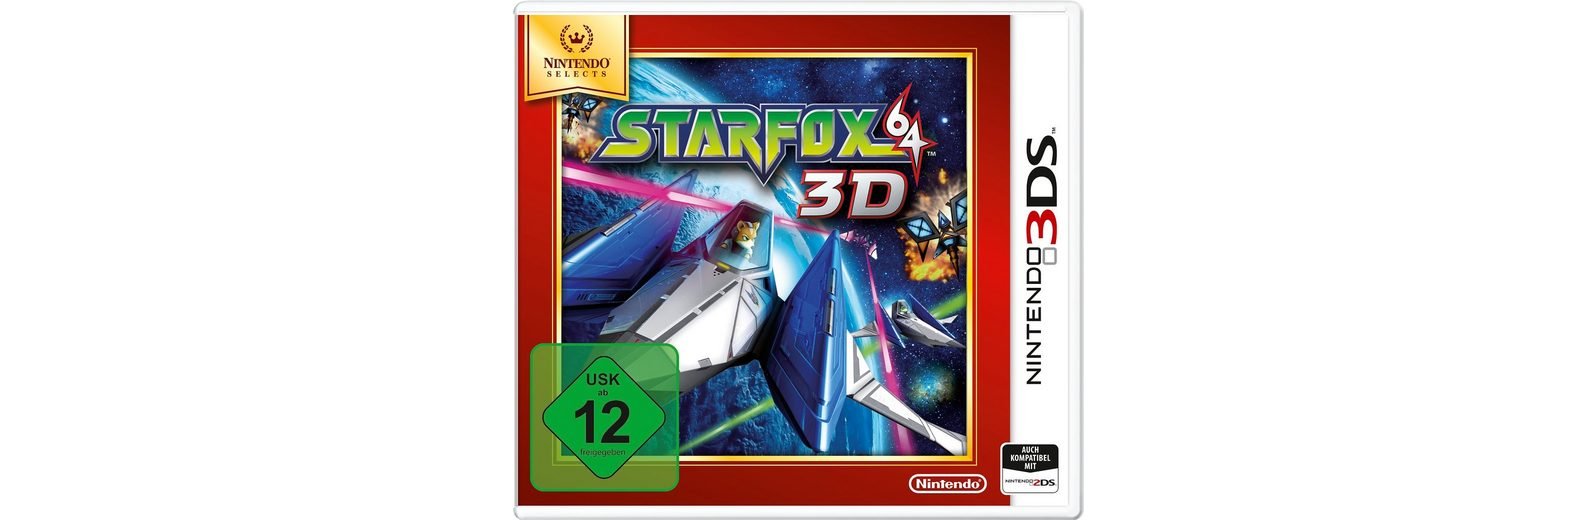 Star Fox 64 3D Nintendo Selects 3DS